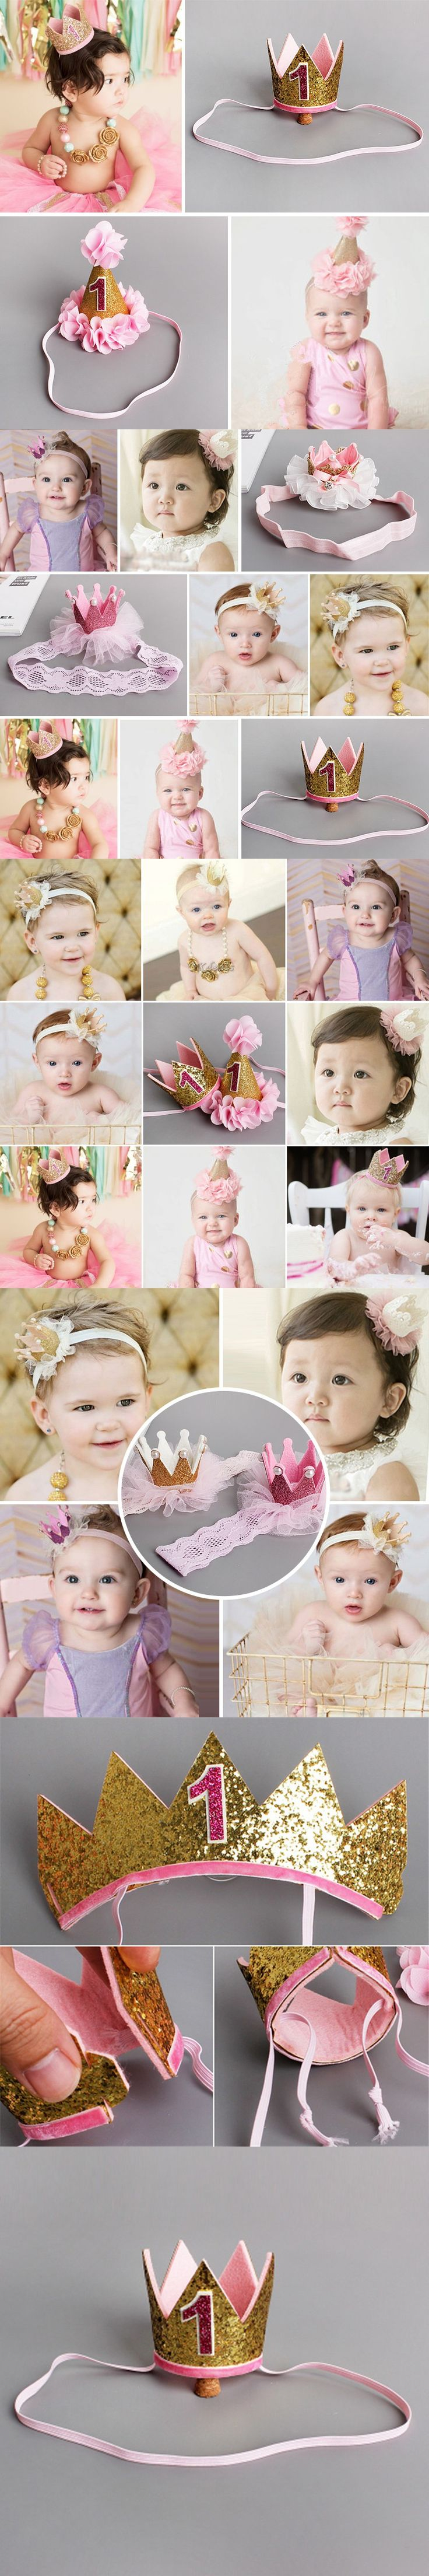 Handmade Infant Newborn Mini Felt Glitter Crown Flower Headband For Baby Girls 1st Birthday Party DIY Garments Hair Accessories